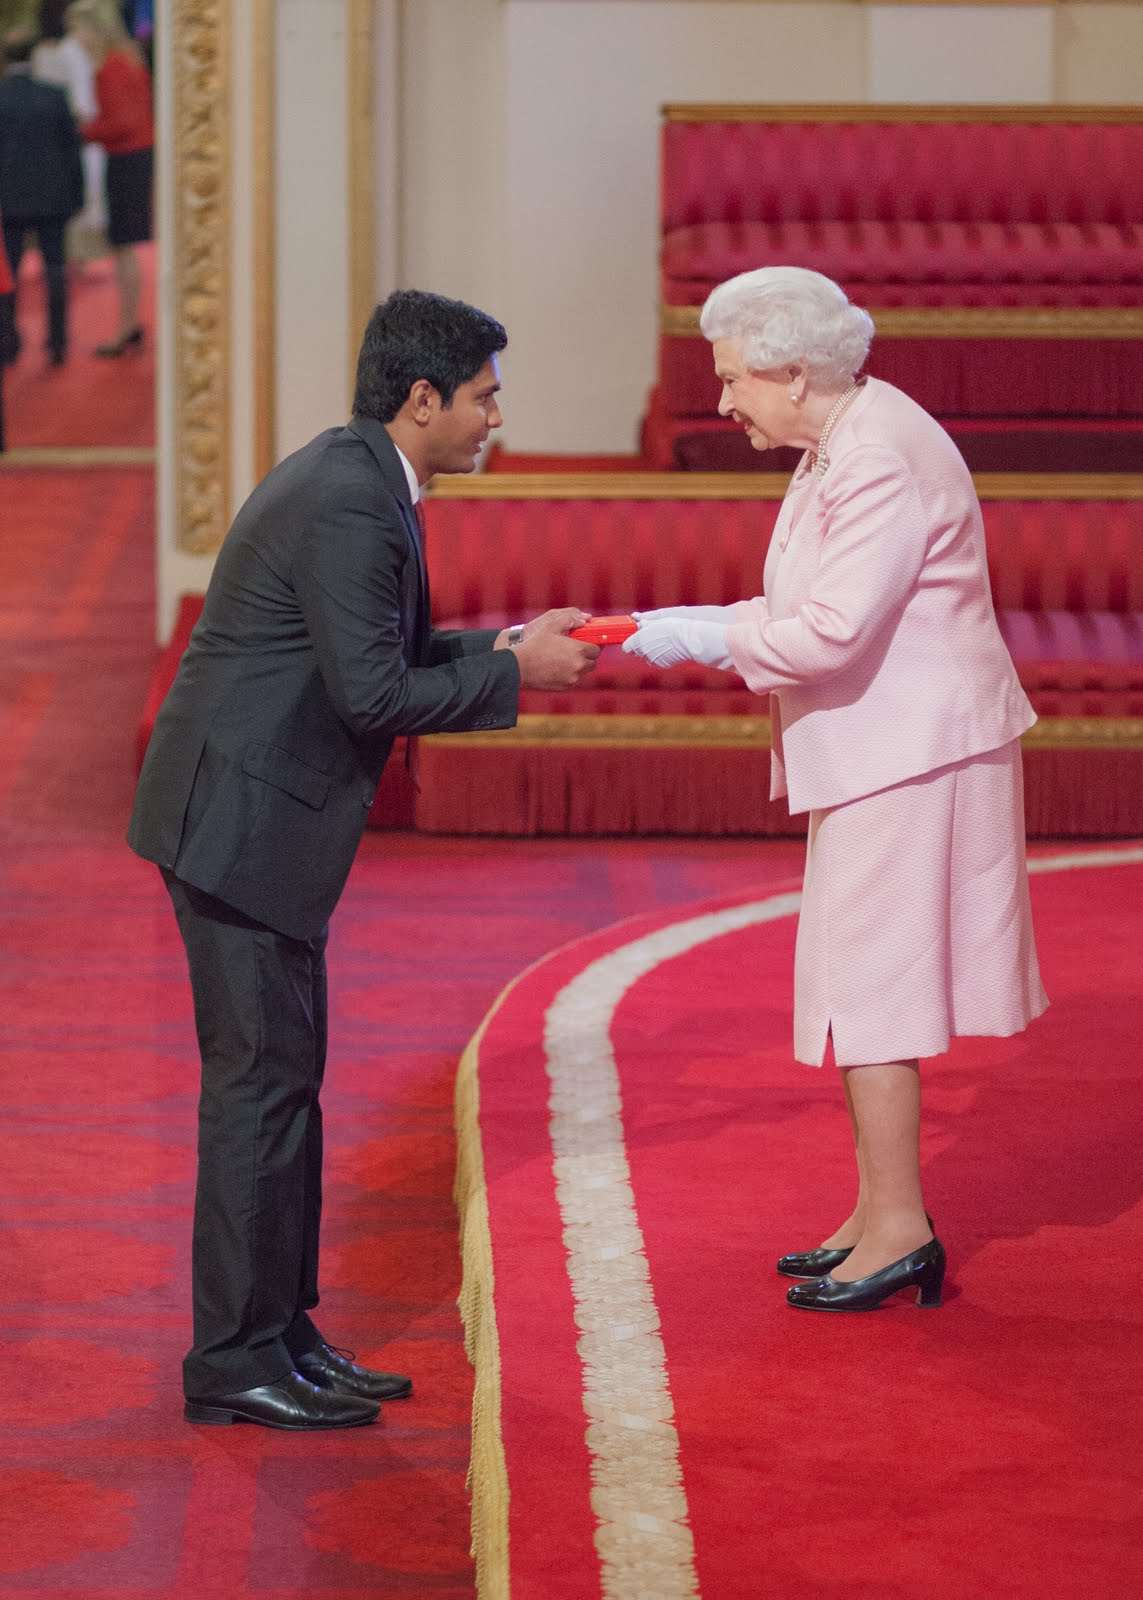 Akshay Jadhao - India 2015 Queen's Young Leader